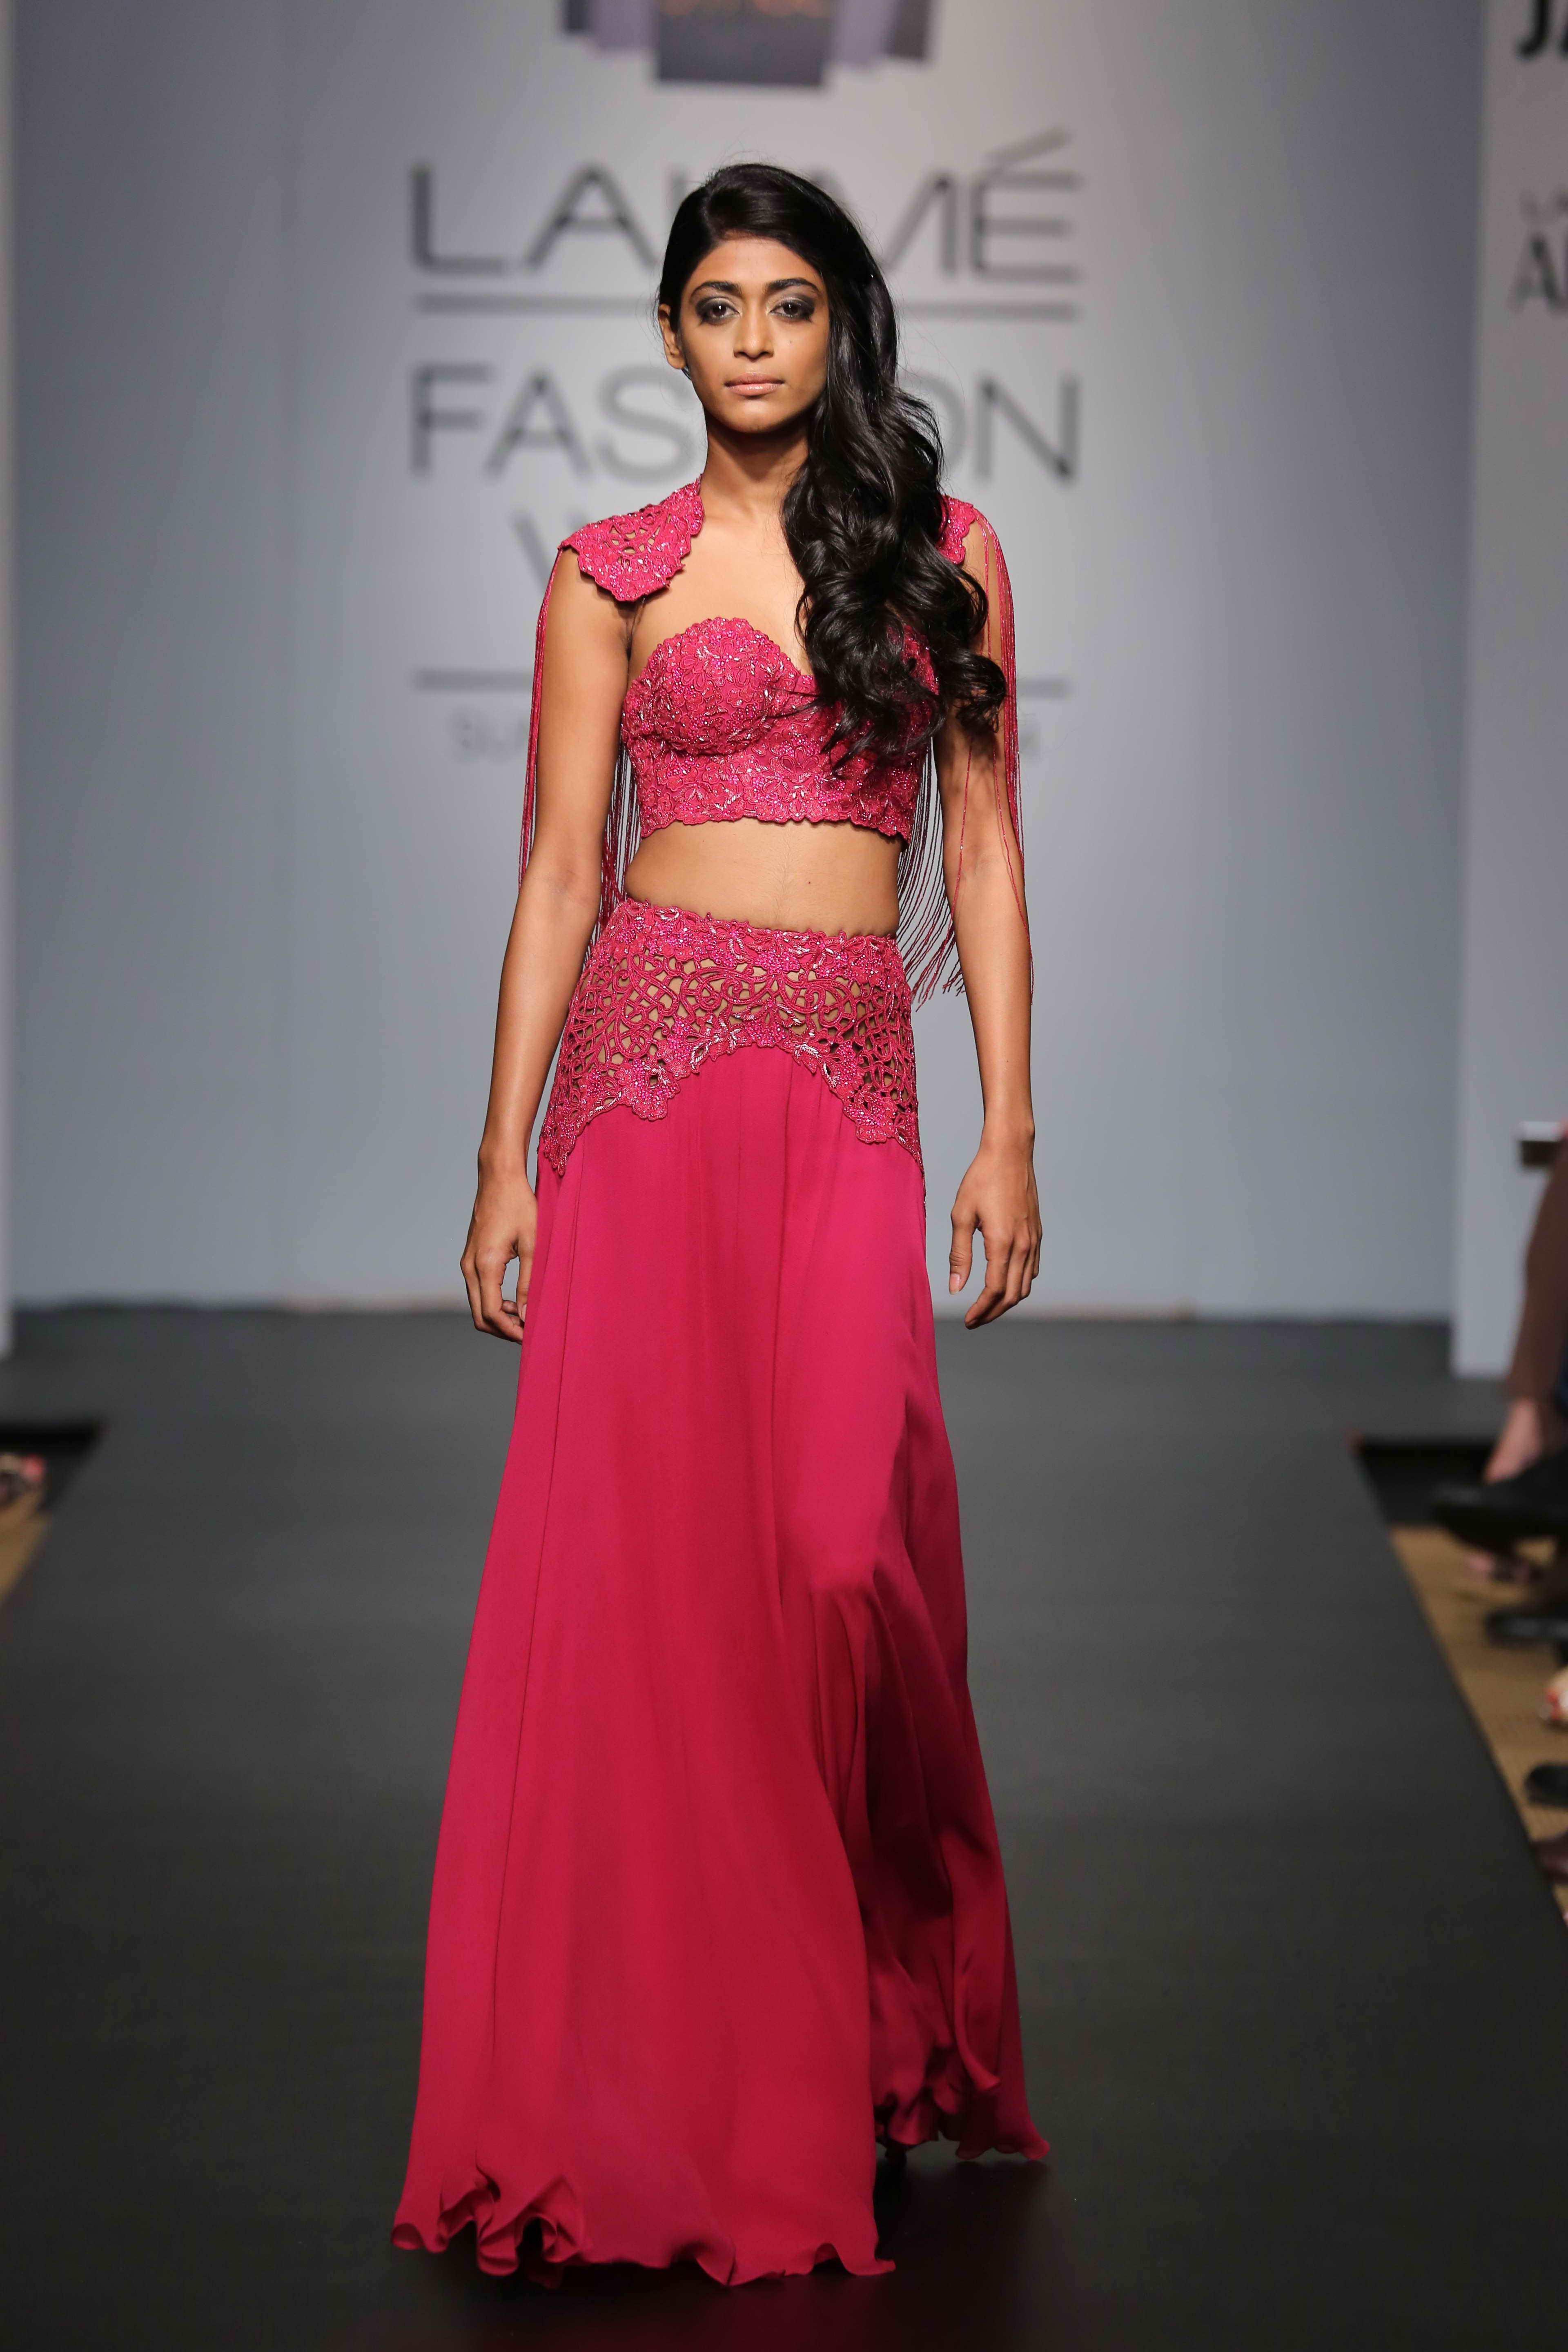 Koëcsh VIK (Very Important Koëcshies) by Krésha Bajaj showcased a punk-rock-chic collection at Jabong Stage during Lakmé Fashion Week Summer/Resort 2014. The collection incorporated vintage elements with a futuristic appeal and was extravagantly disp